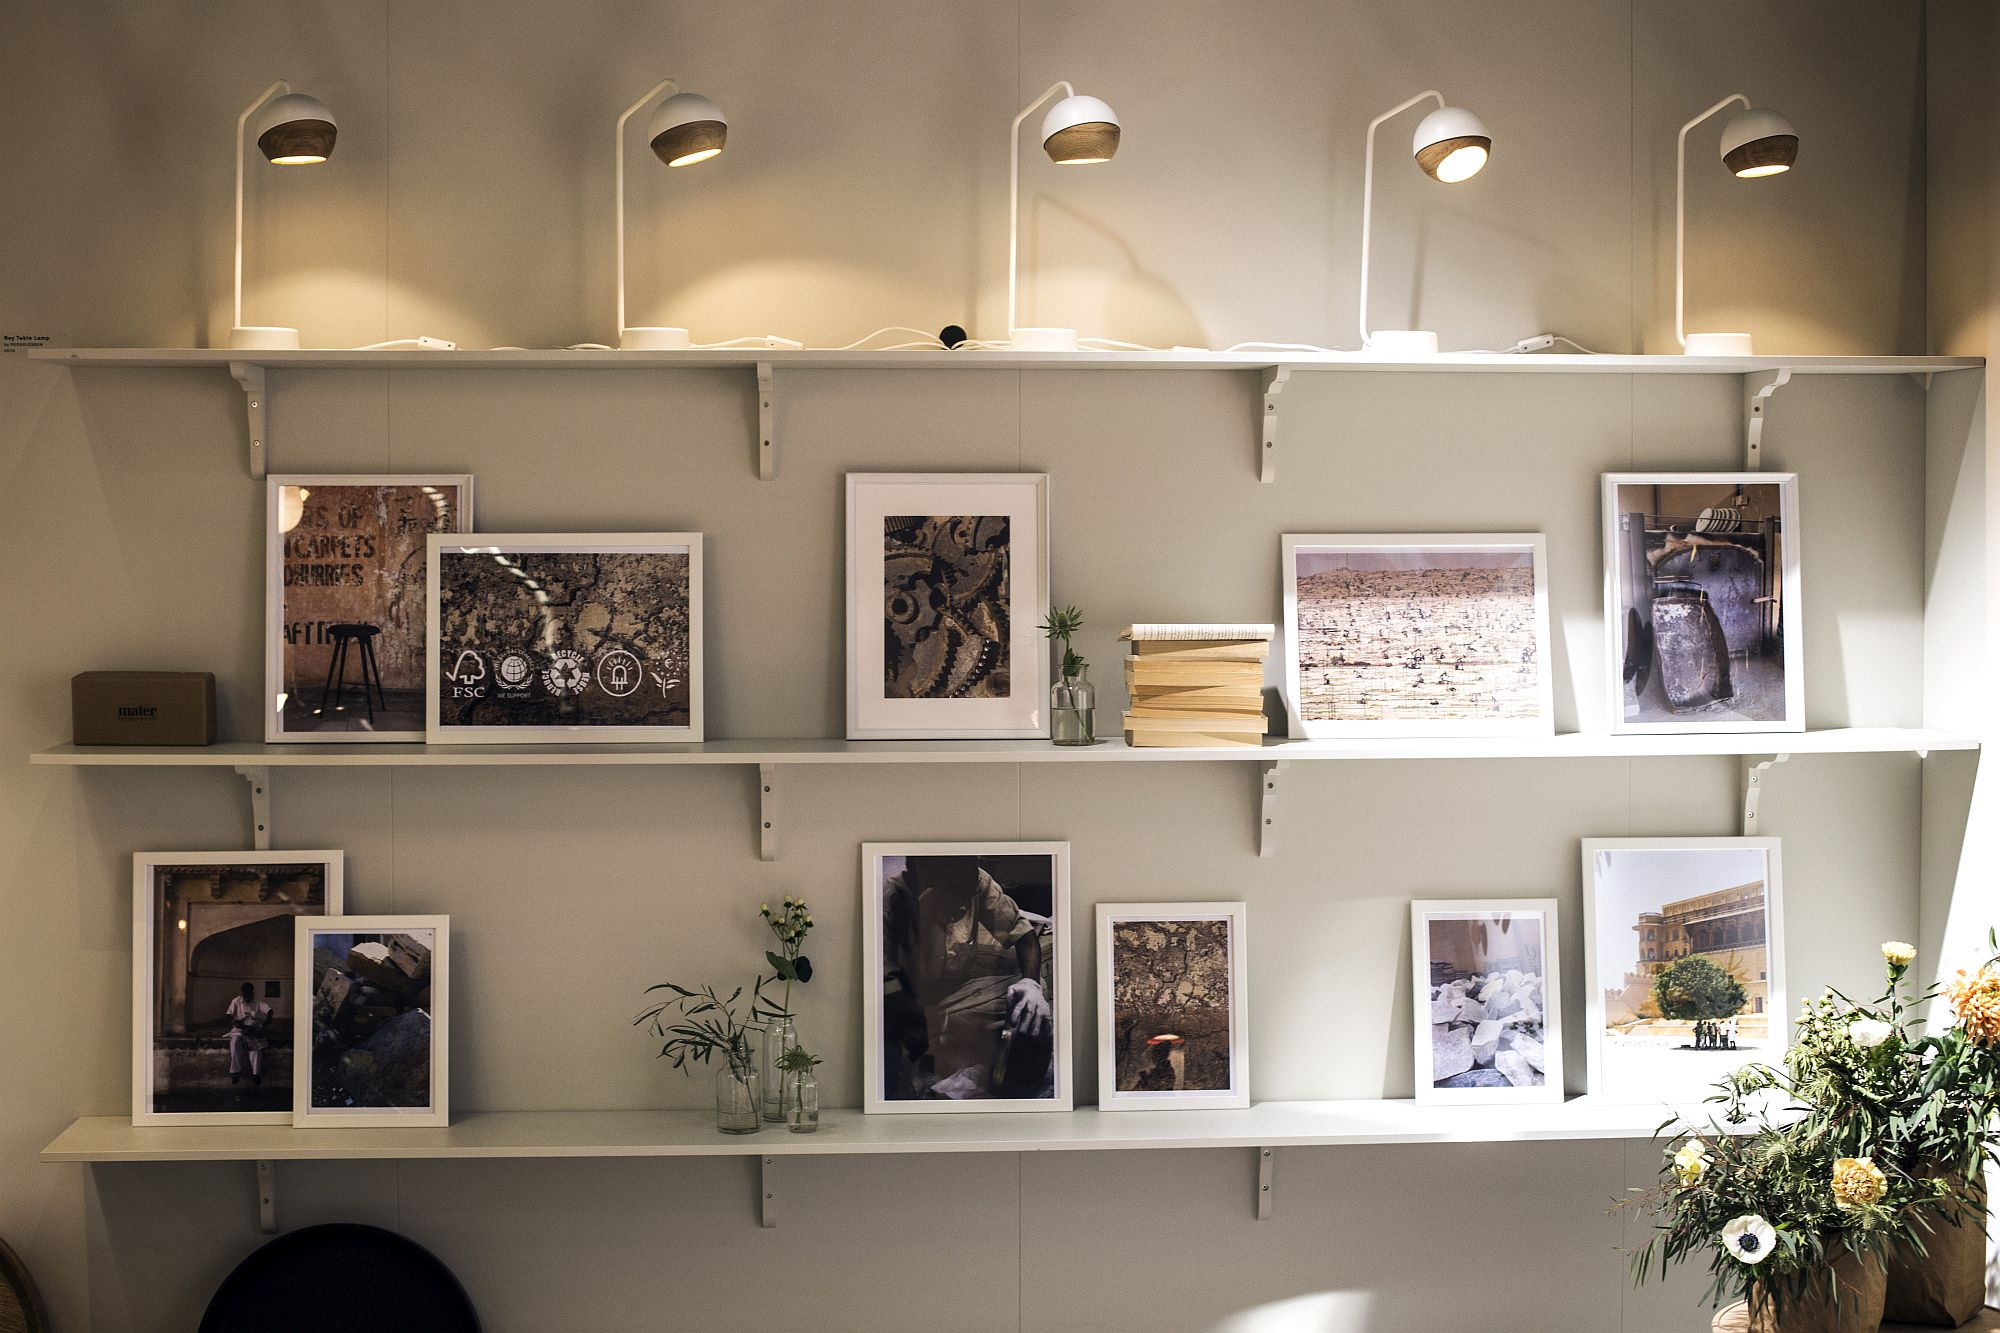 Lighting adds to the beauty and simplicity of the floating shelves in white